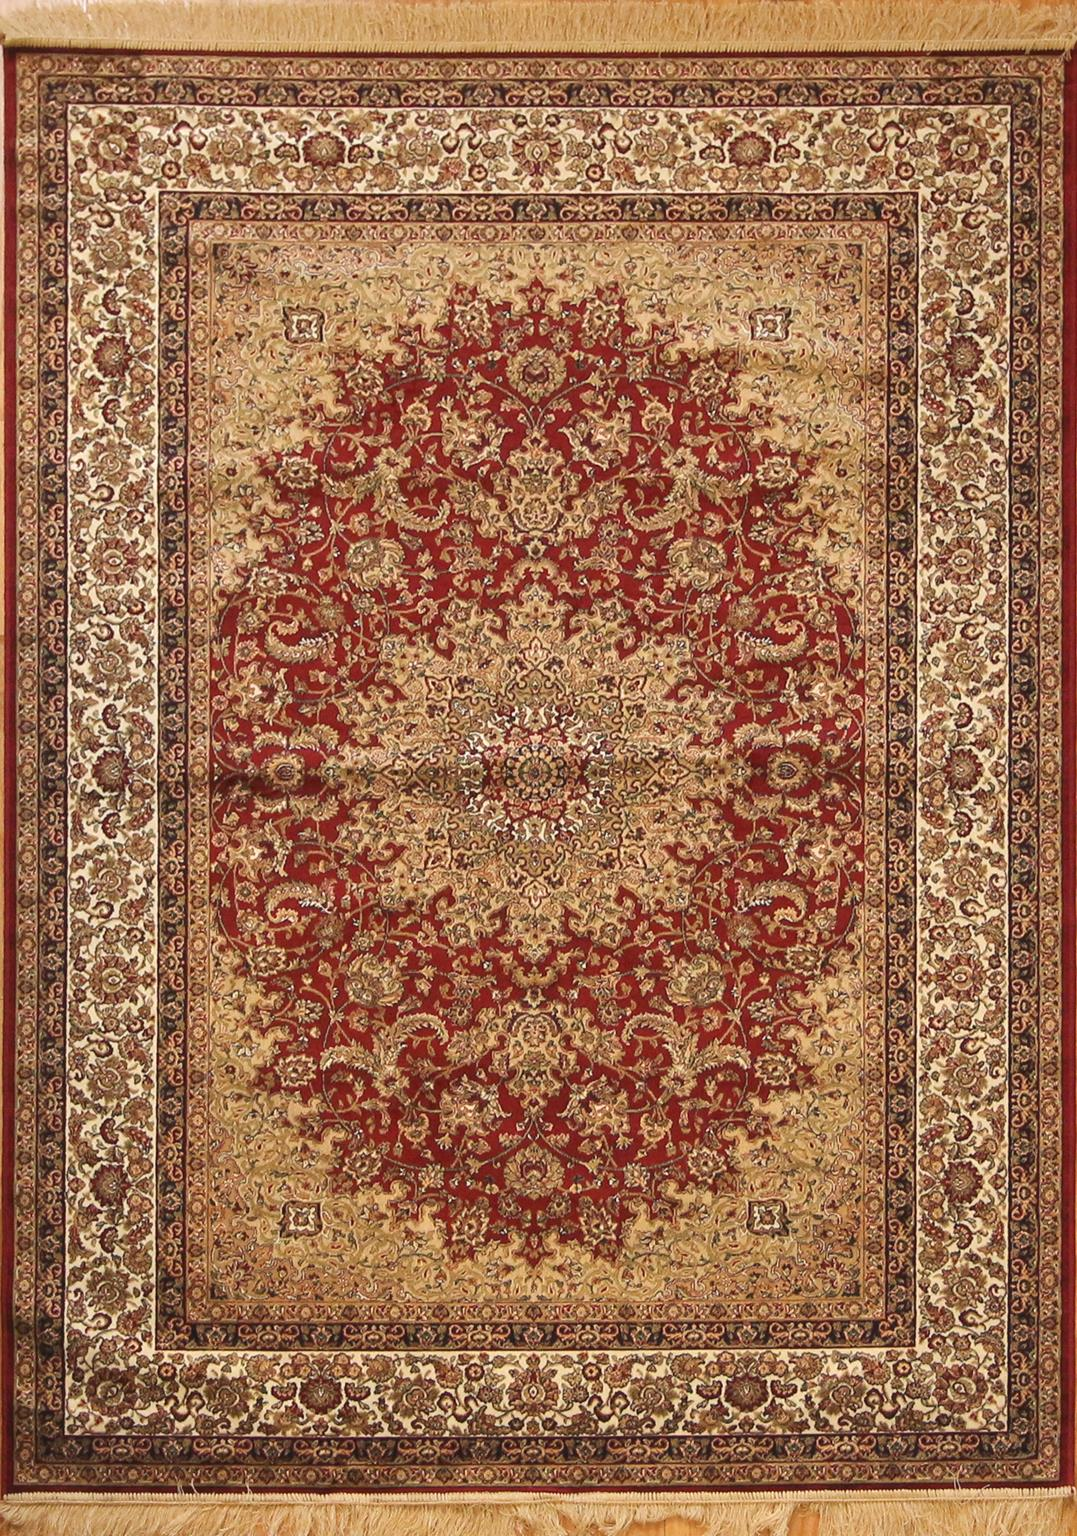 Silk Area Rugs Area Rugs Discount Rugs Superior Rugs